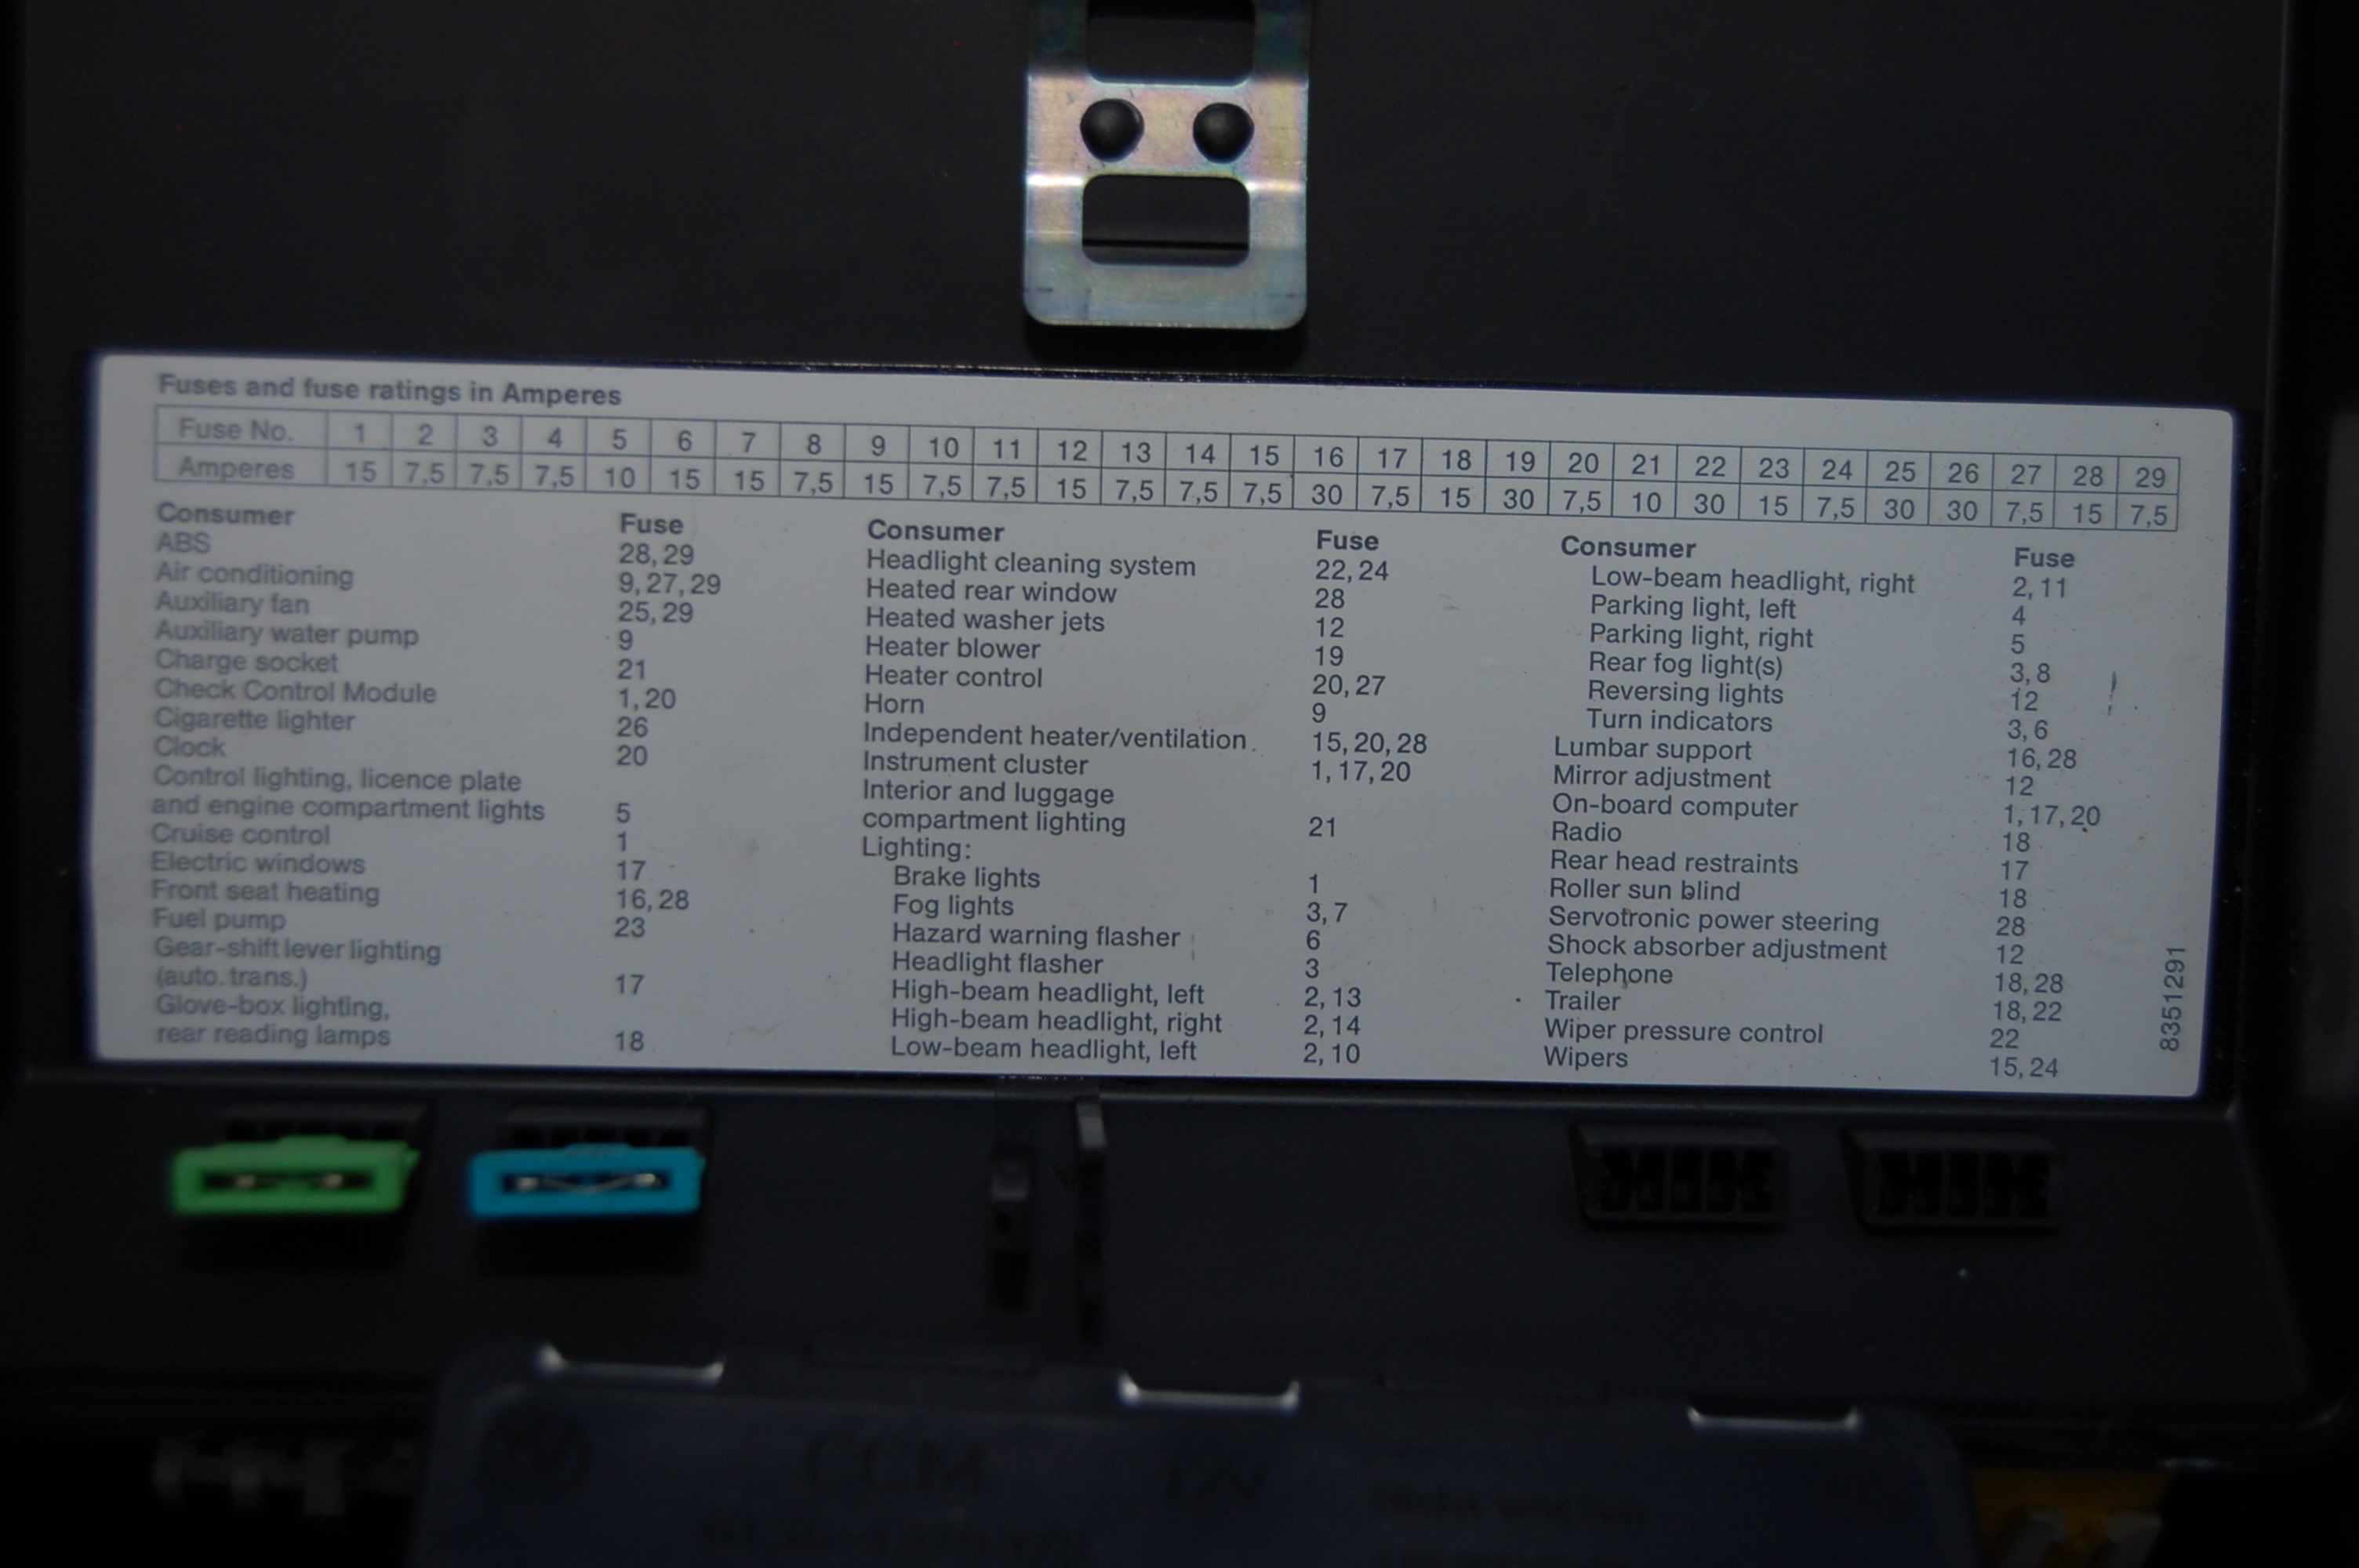 e34 fuse box diagram wiring diagram mega e34 fuse box diagram [ 3008 x 2000 Pixel ]